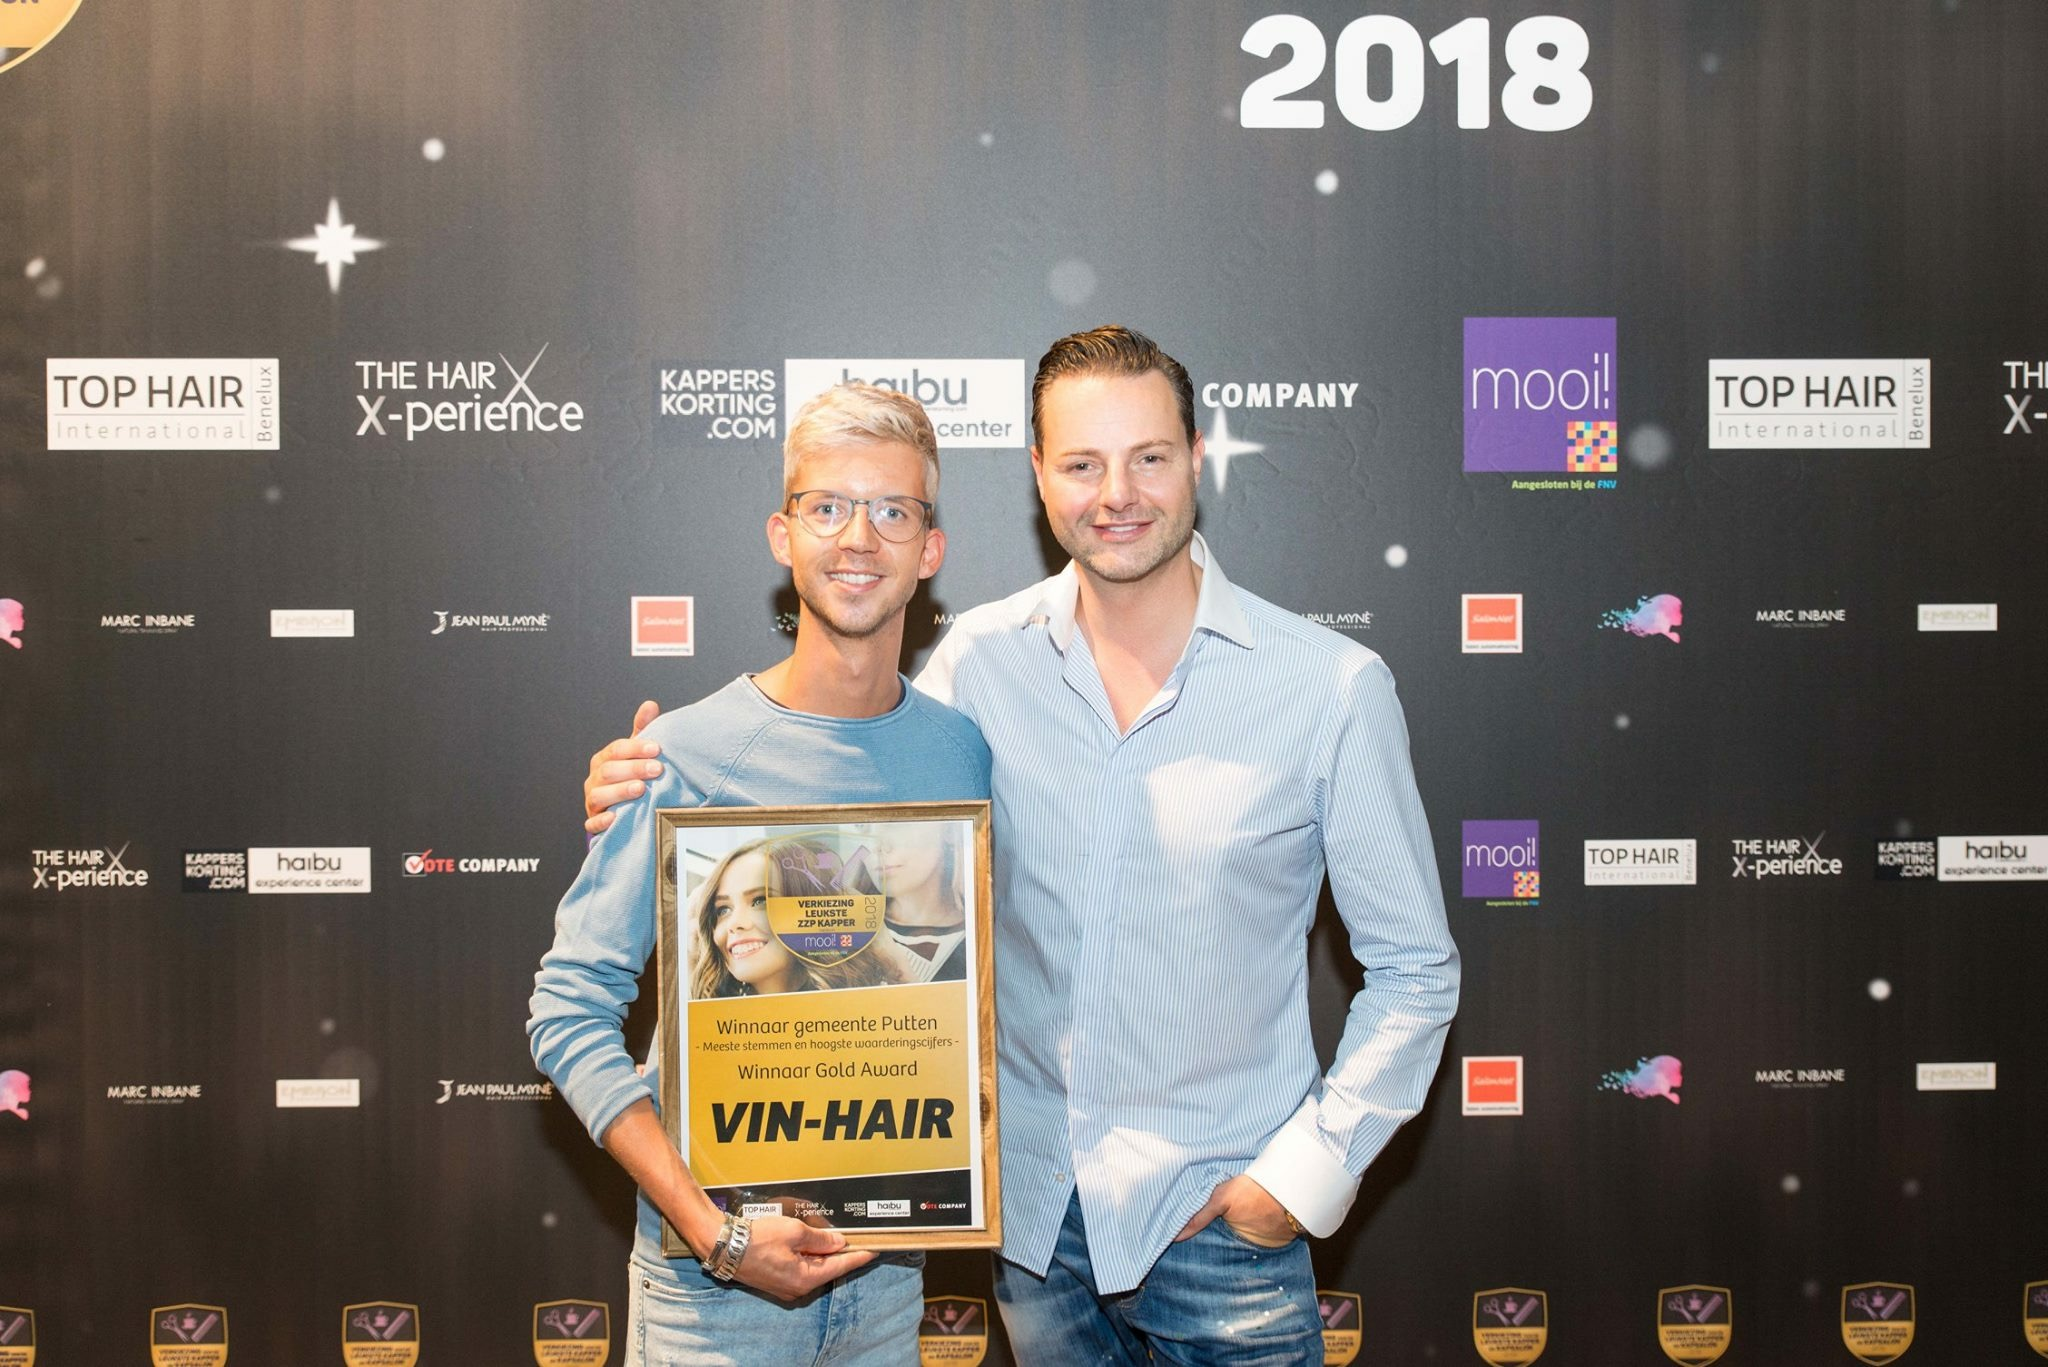 Vincent - Kapper bij Vin-Hair Putten